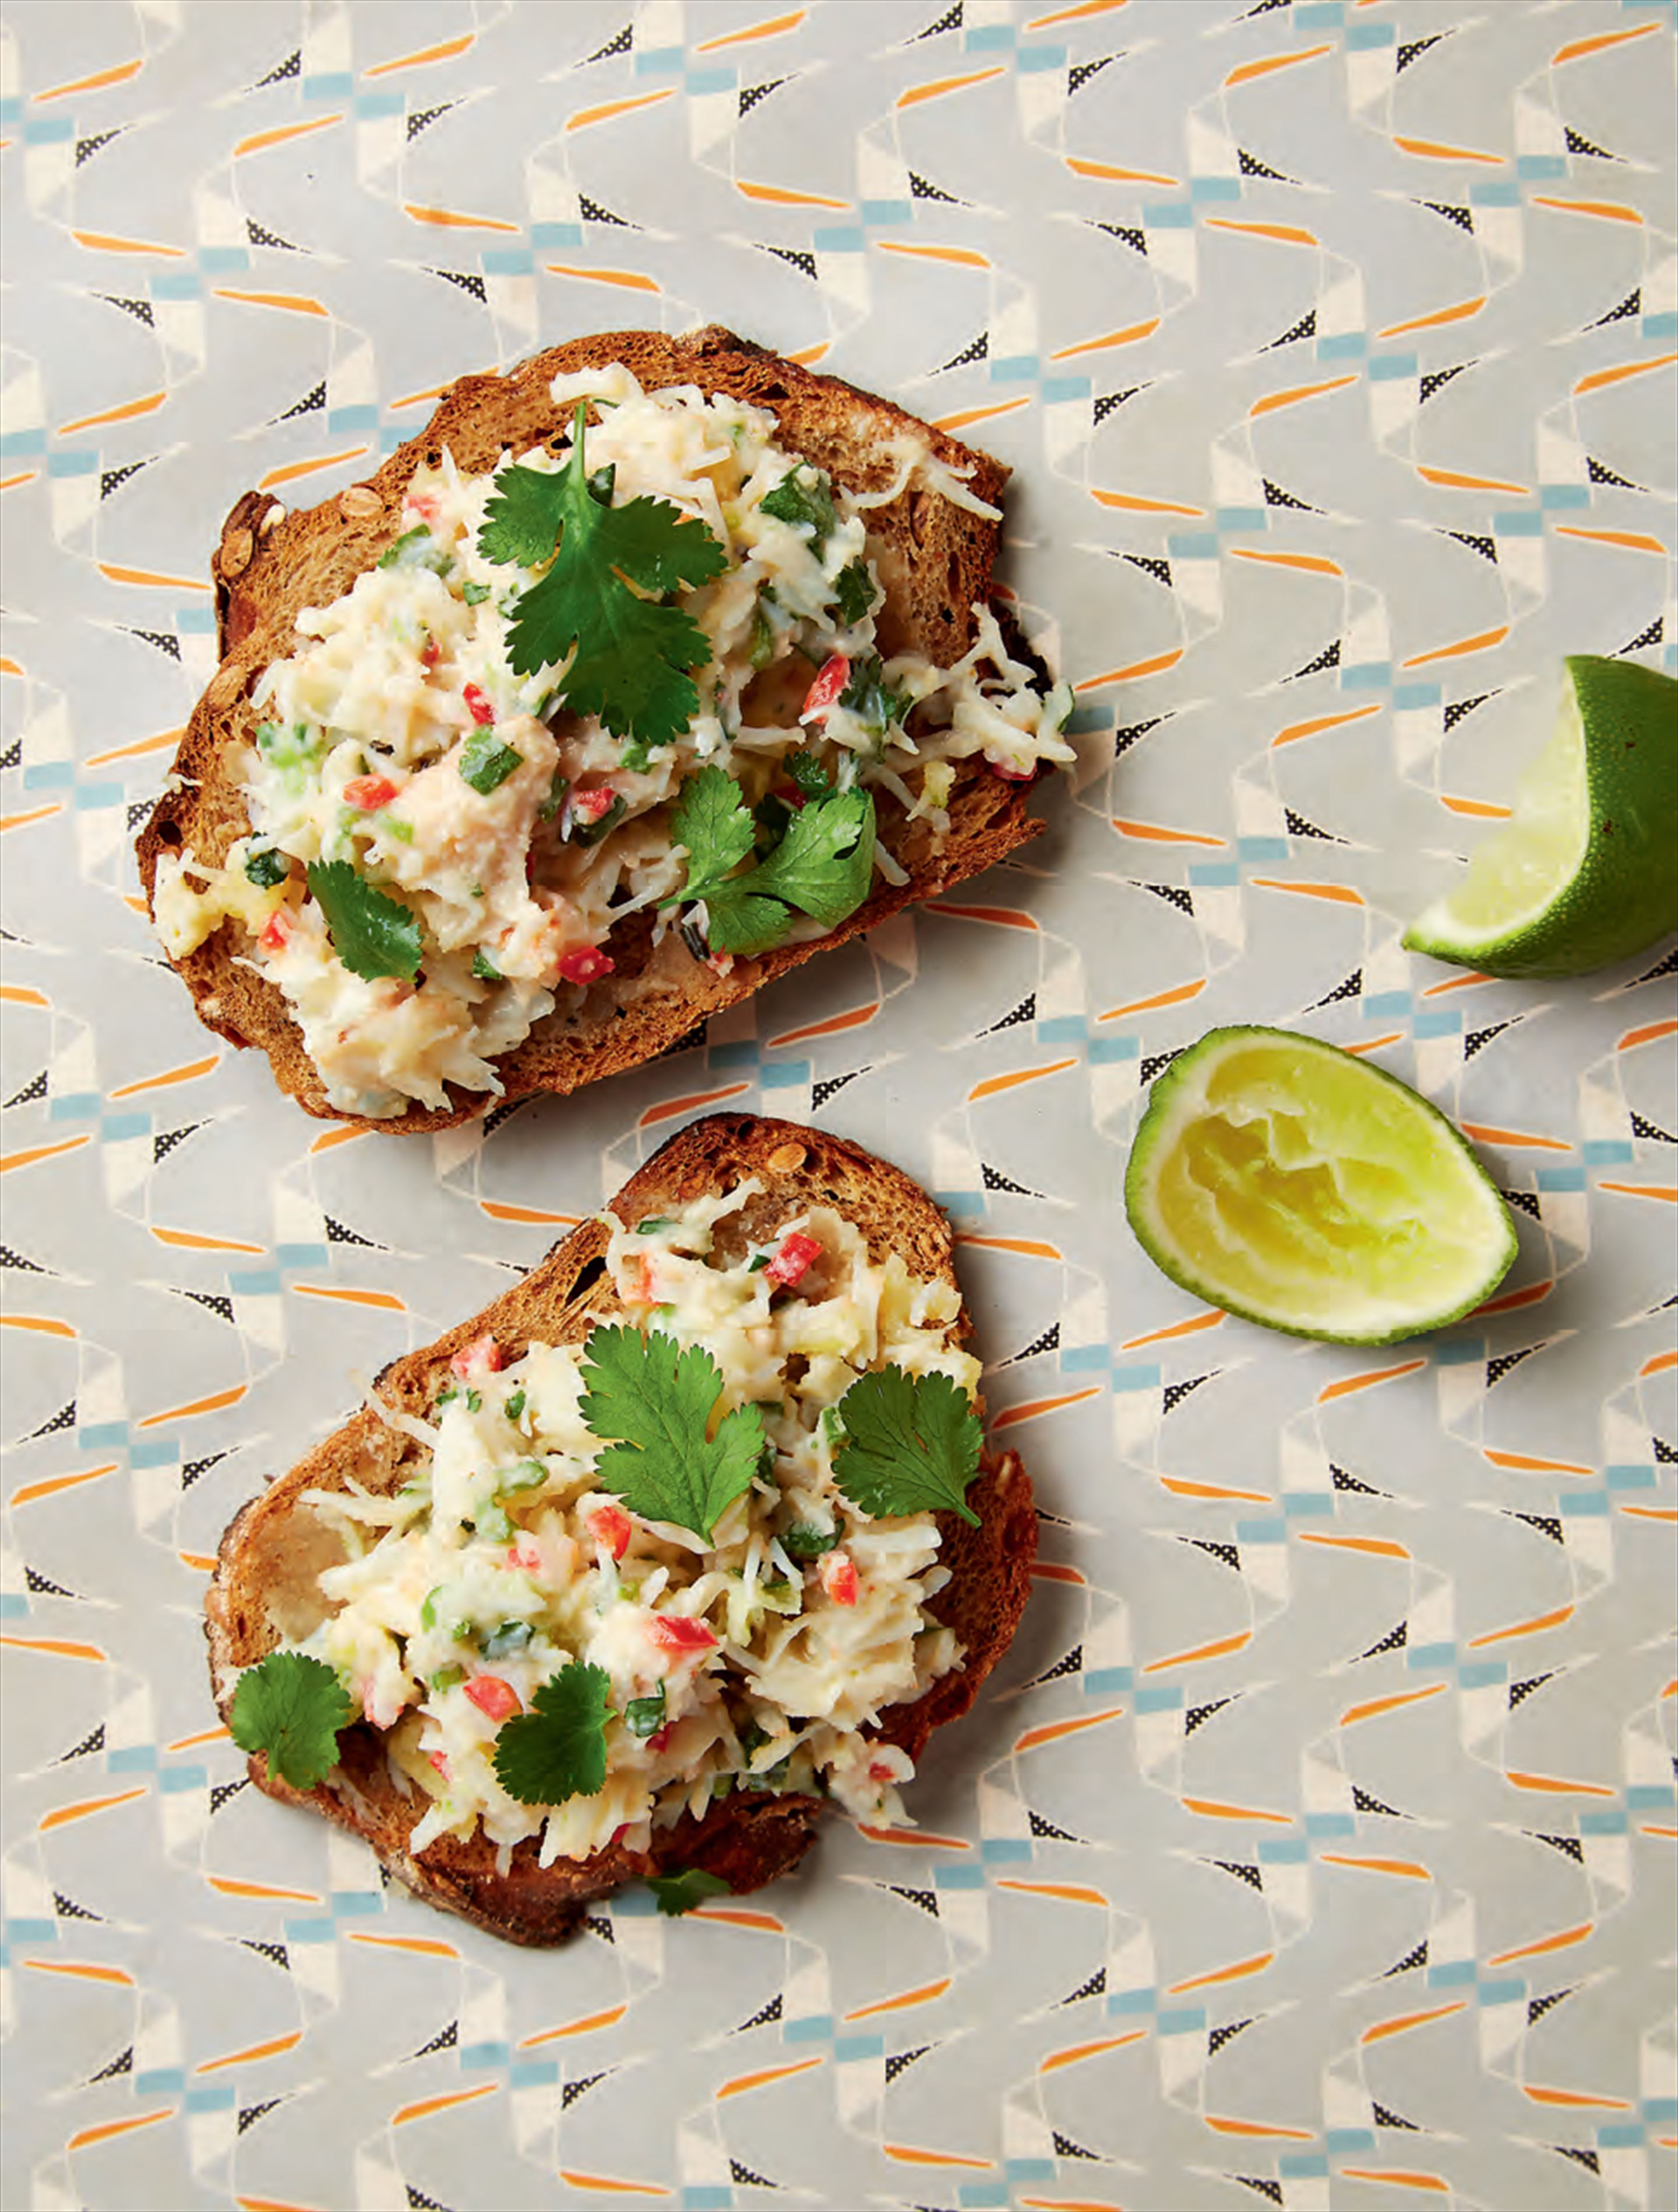 Spiced potted crab